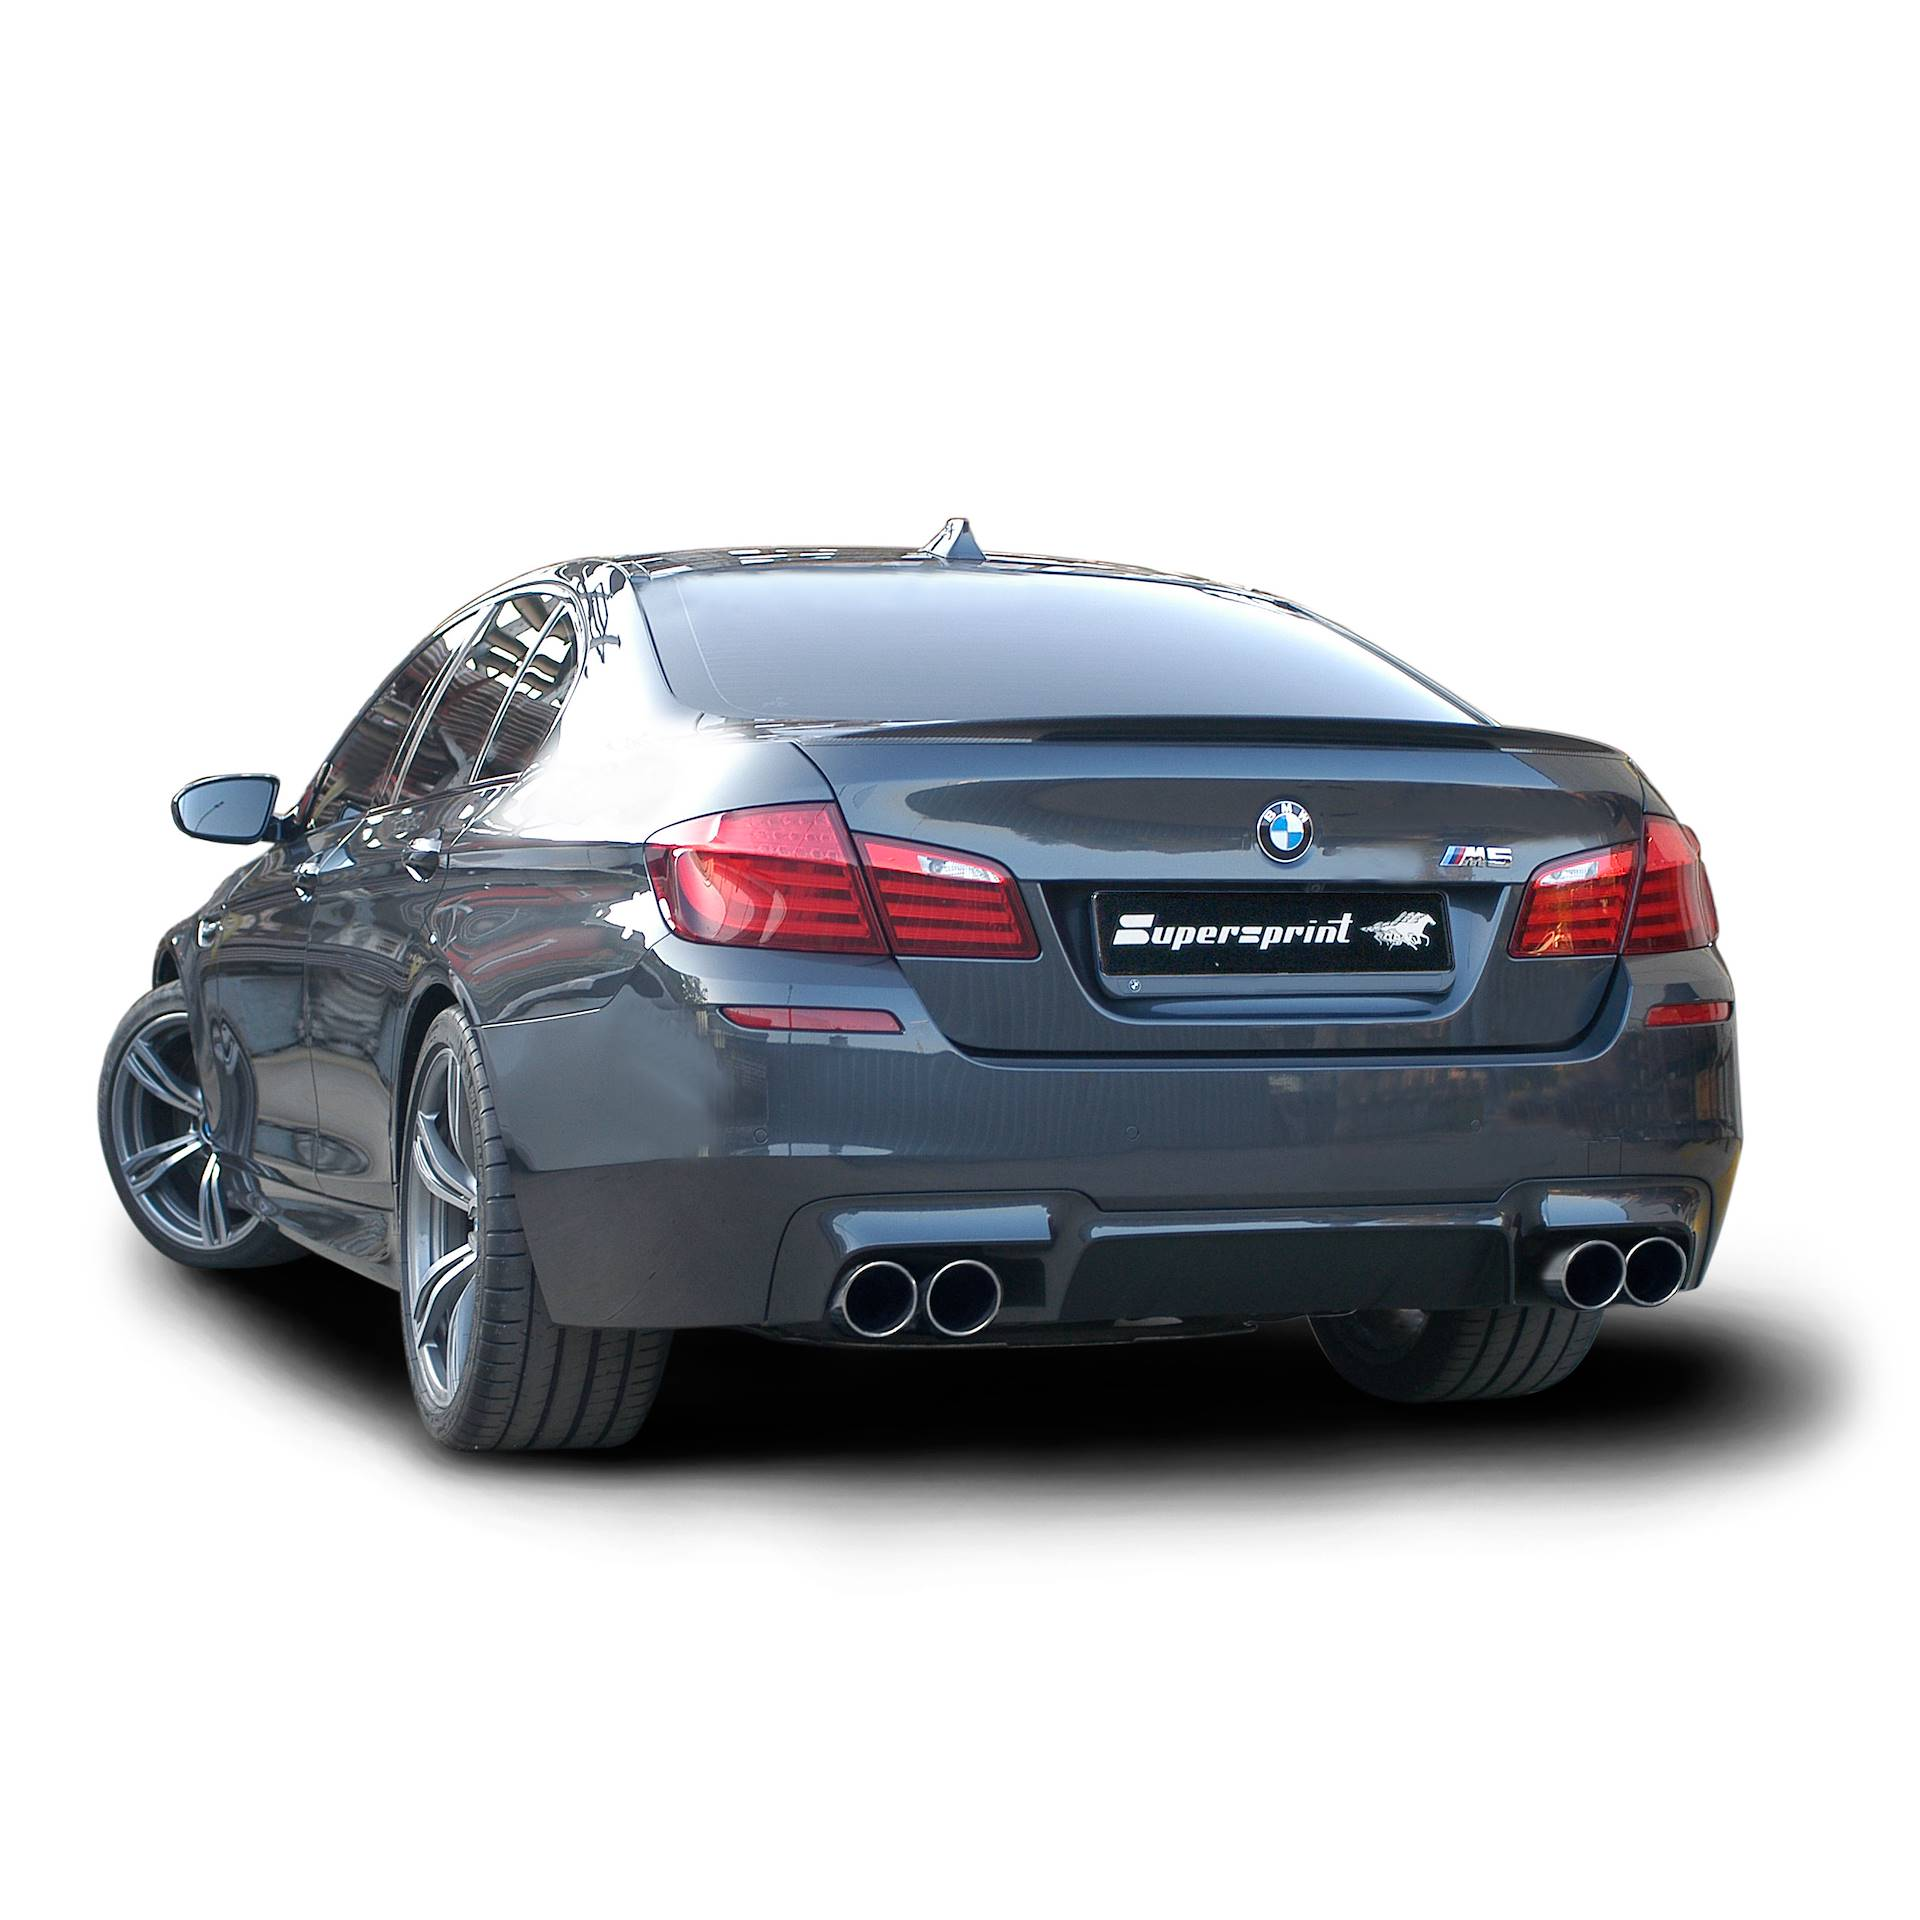 bmw f10 m5 v8 2012 full supersprint exhaust rear mufflers with bypass valves official videos. Black Bedroom Furniture Sets. Home Design Ideas